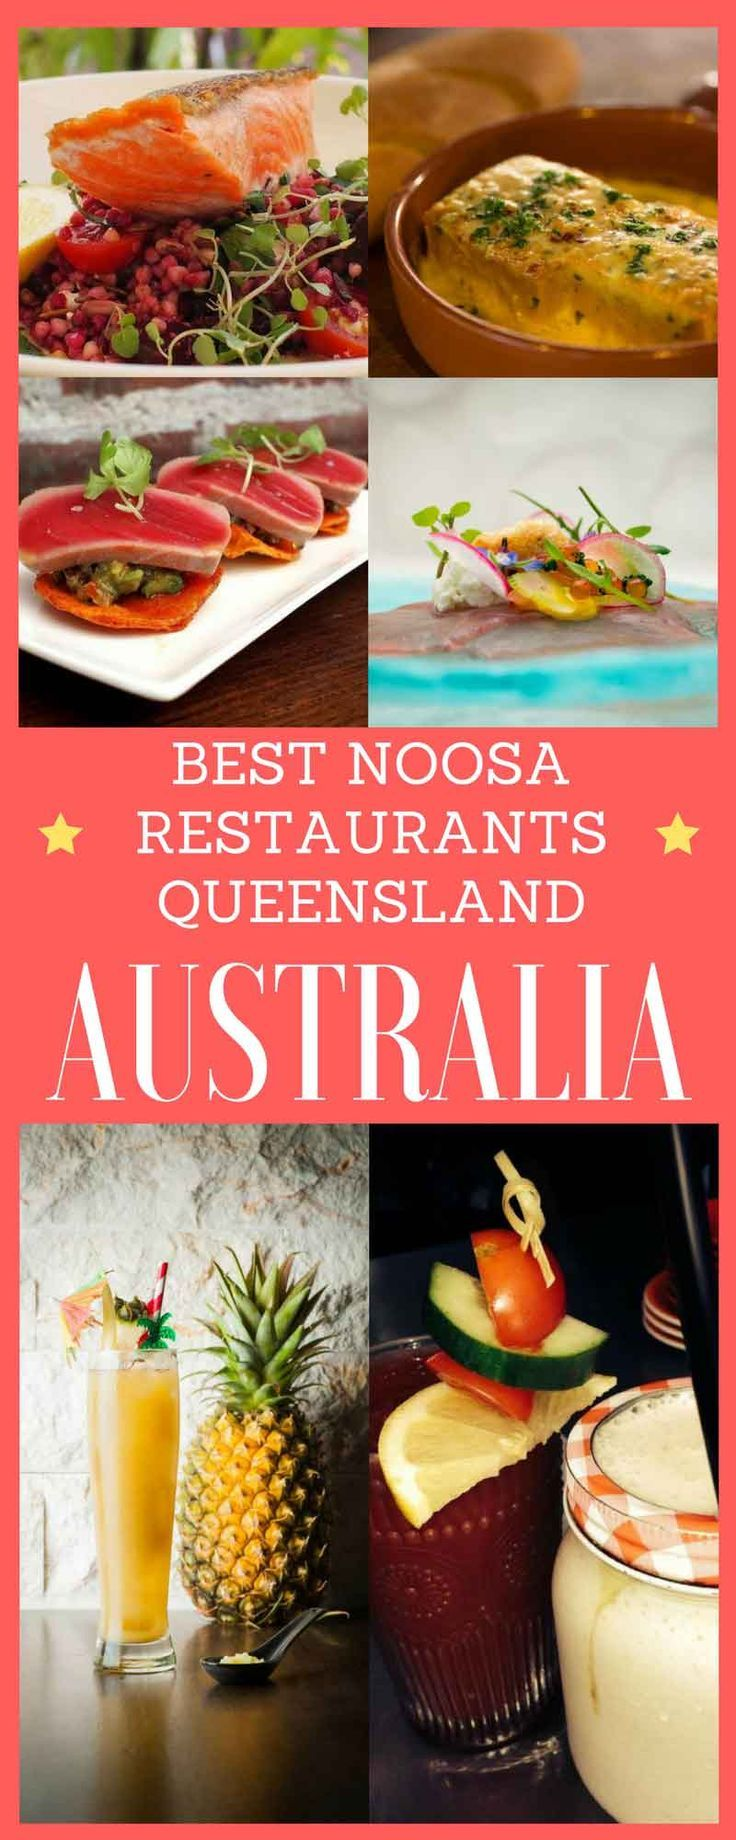 Best Noosa restaurants Hastings Street and beyond. Foodies rejoice: there are as many cutting-edge eateries in Noosa as there are tanned beach bods.